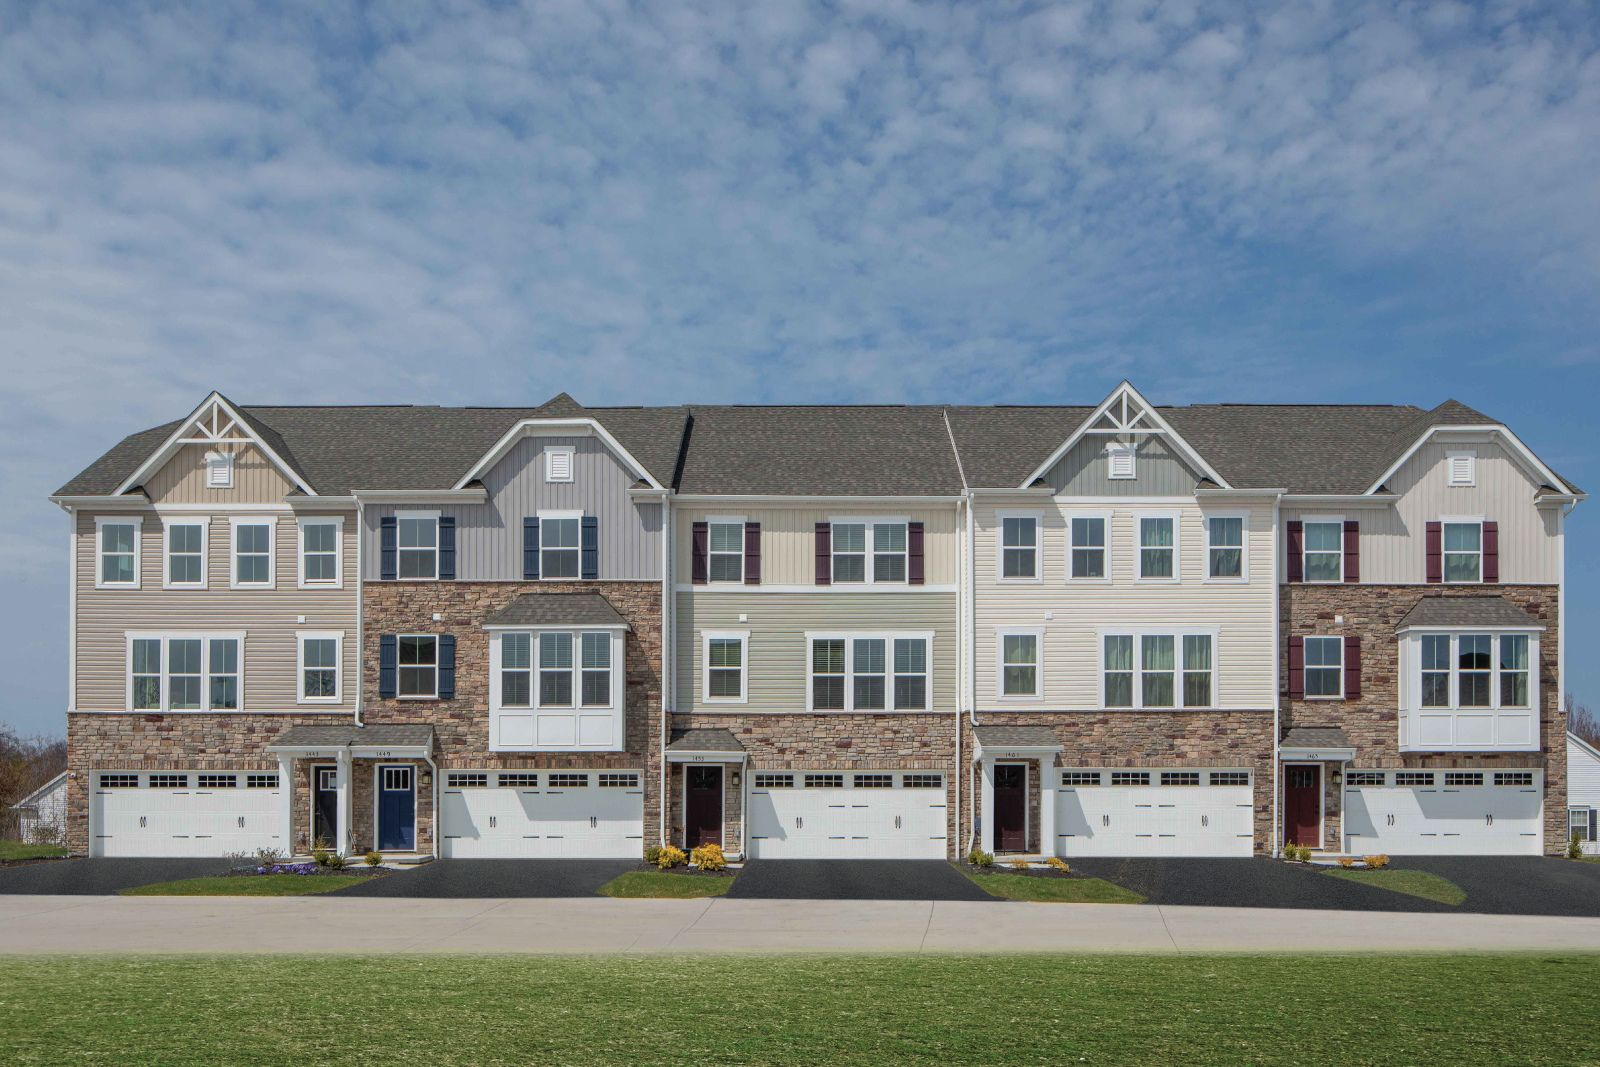 Welcome to Greenwood Village:The best location for new townhomes in Canonsburg with the quickest access to I-79, Rt. 19, & Southpointe. Lawn maintenance included. From upper $200s.Click hereto sign up for the Grand Opening.